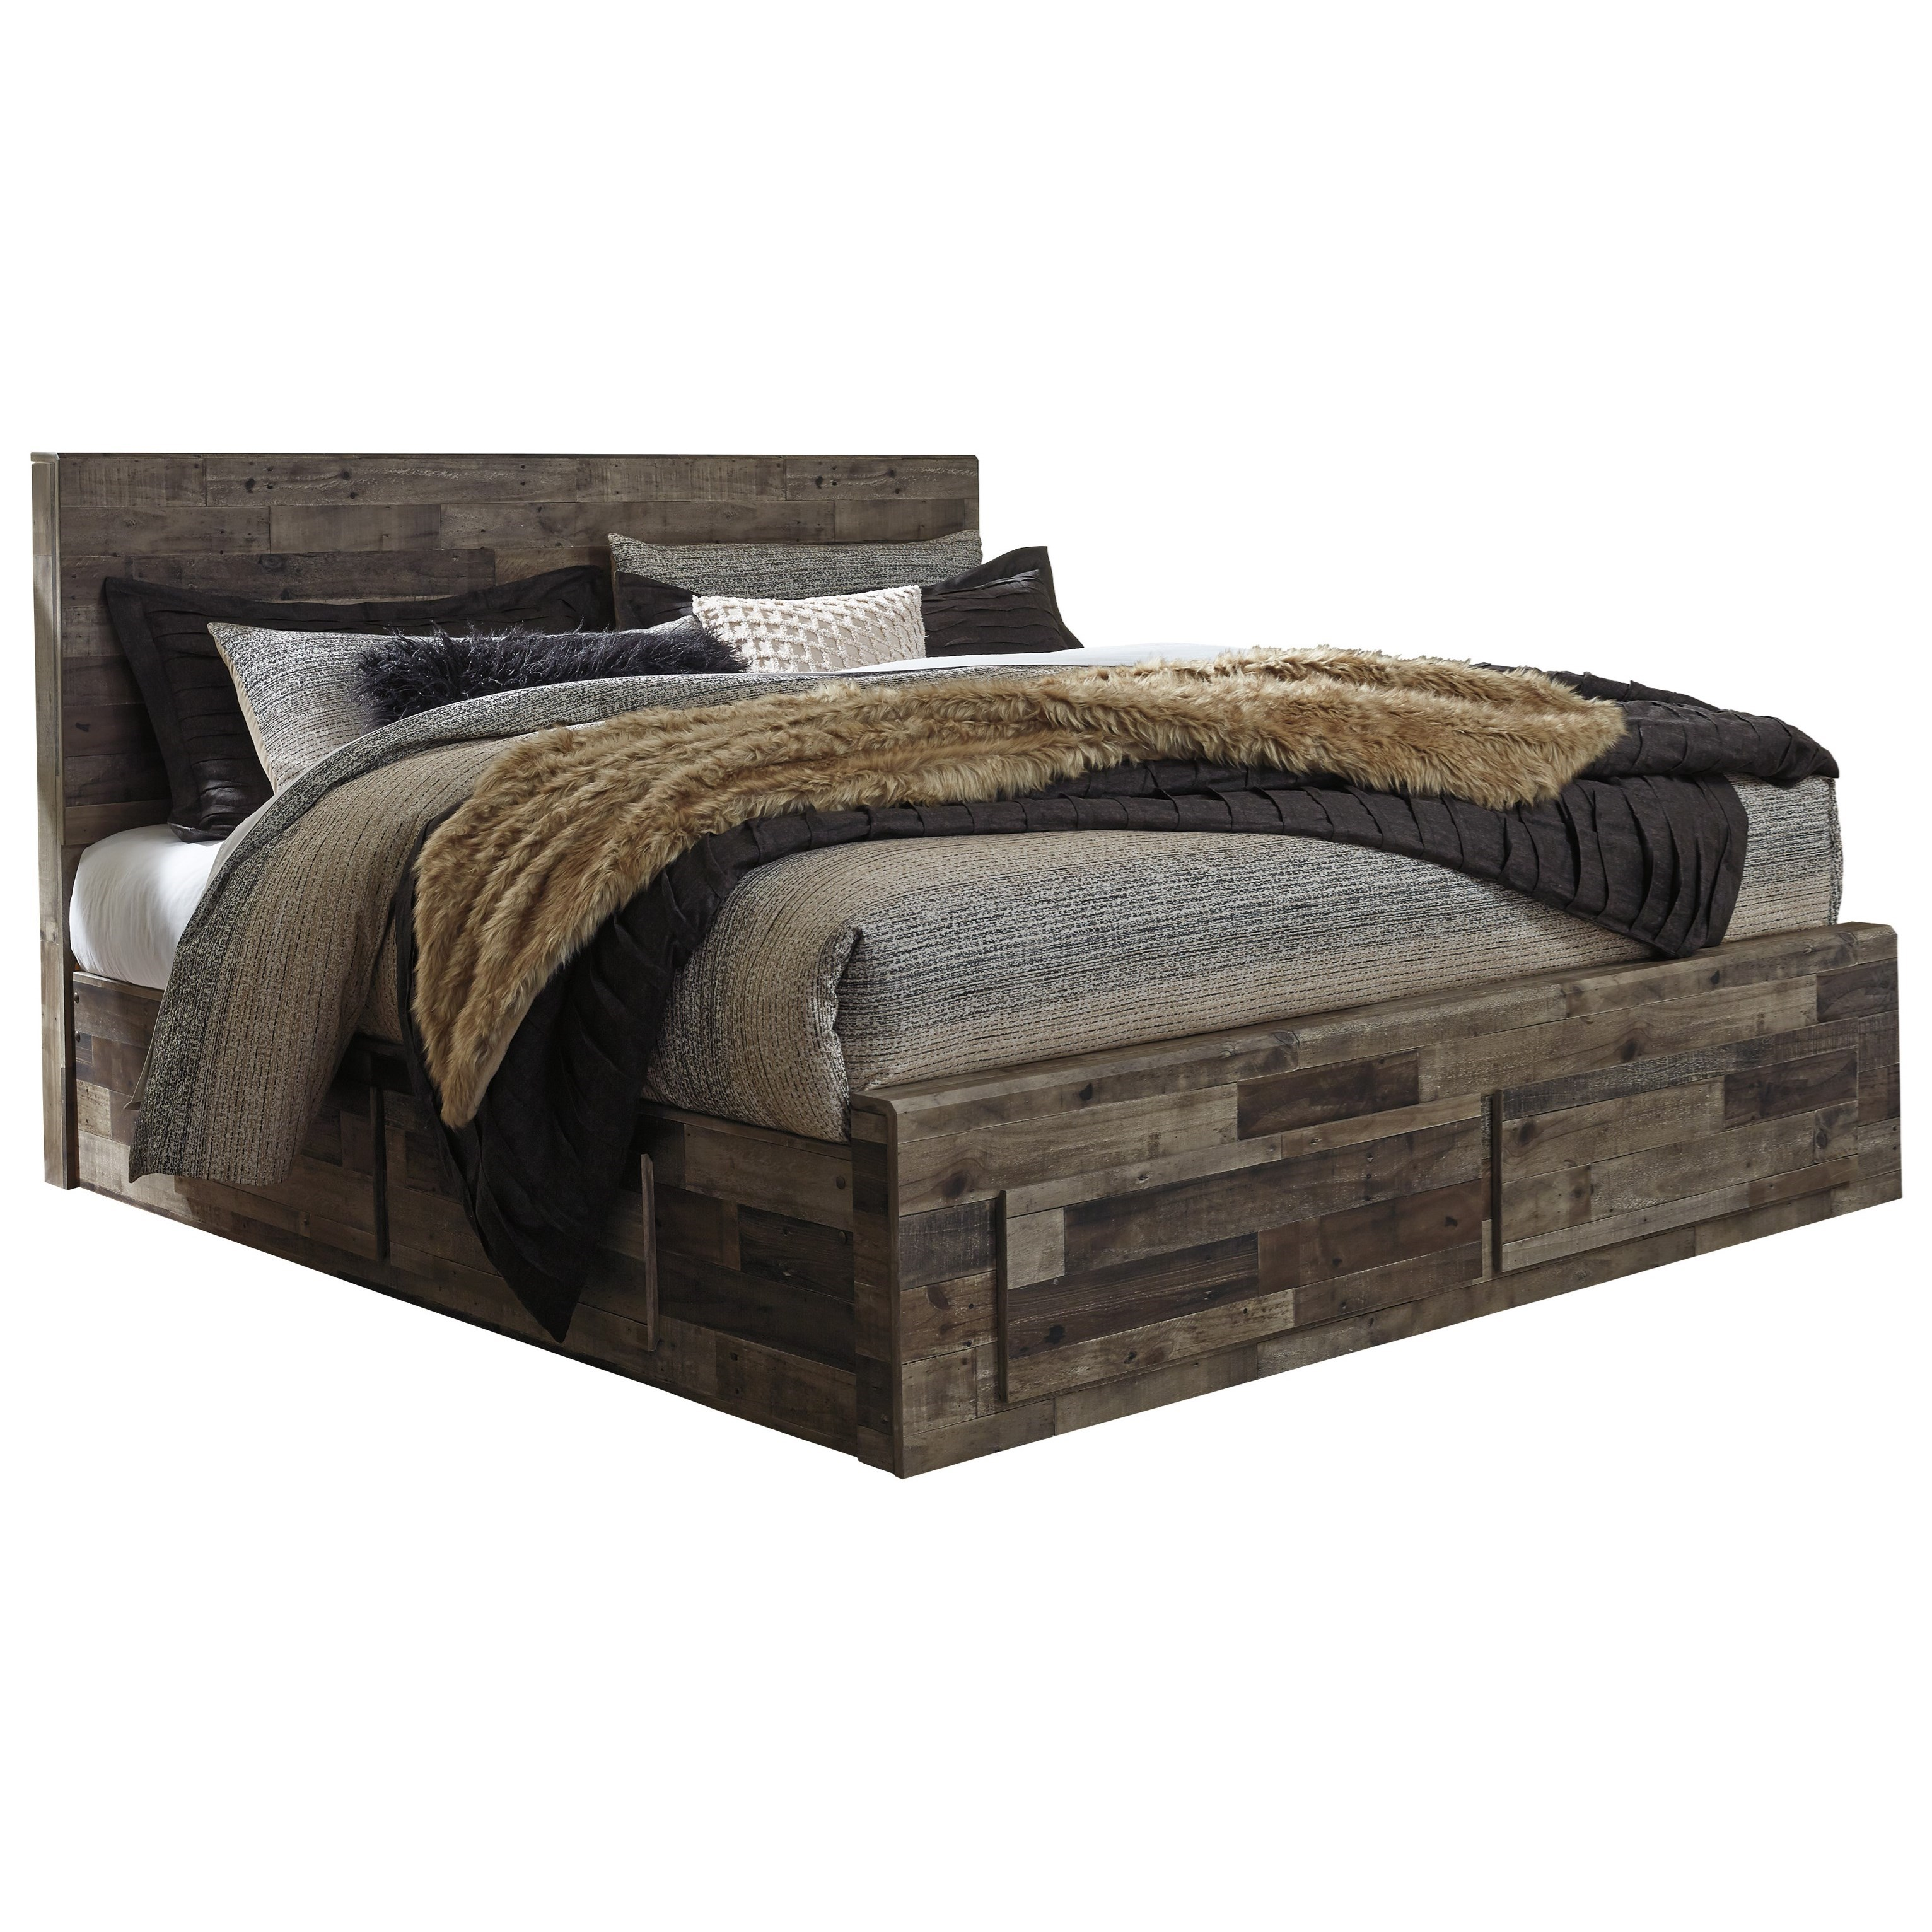 Derekson Rustic Modern King Storage Bed With 6 Drawers